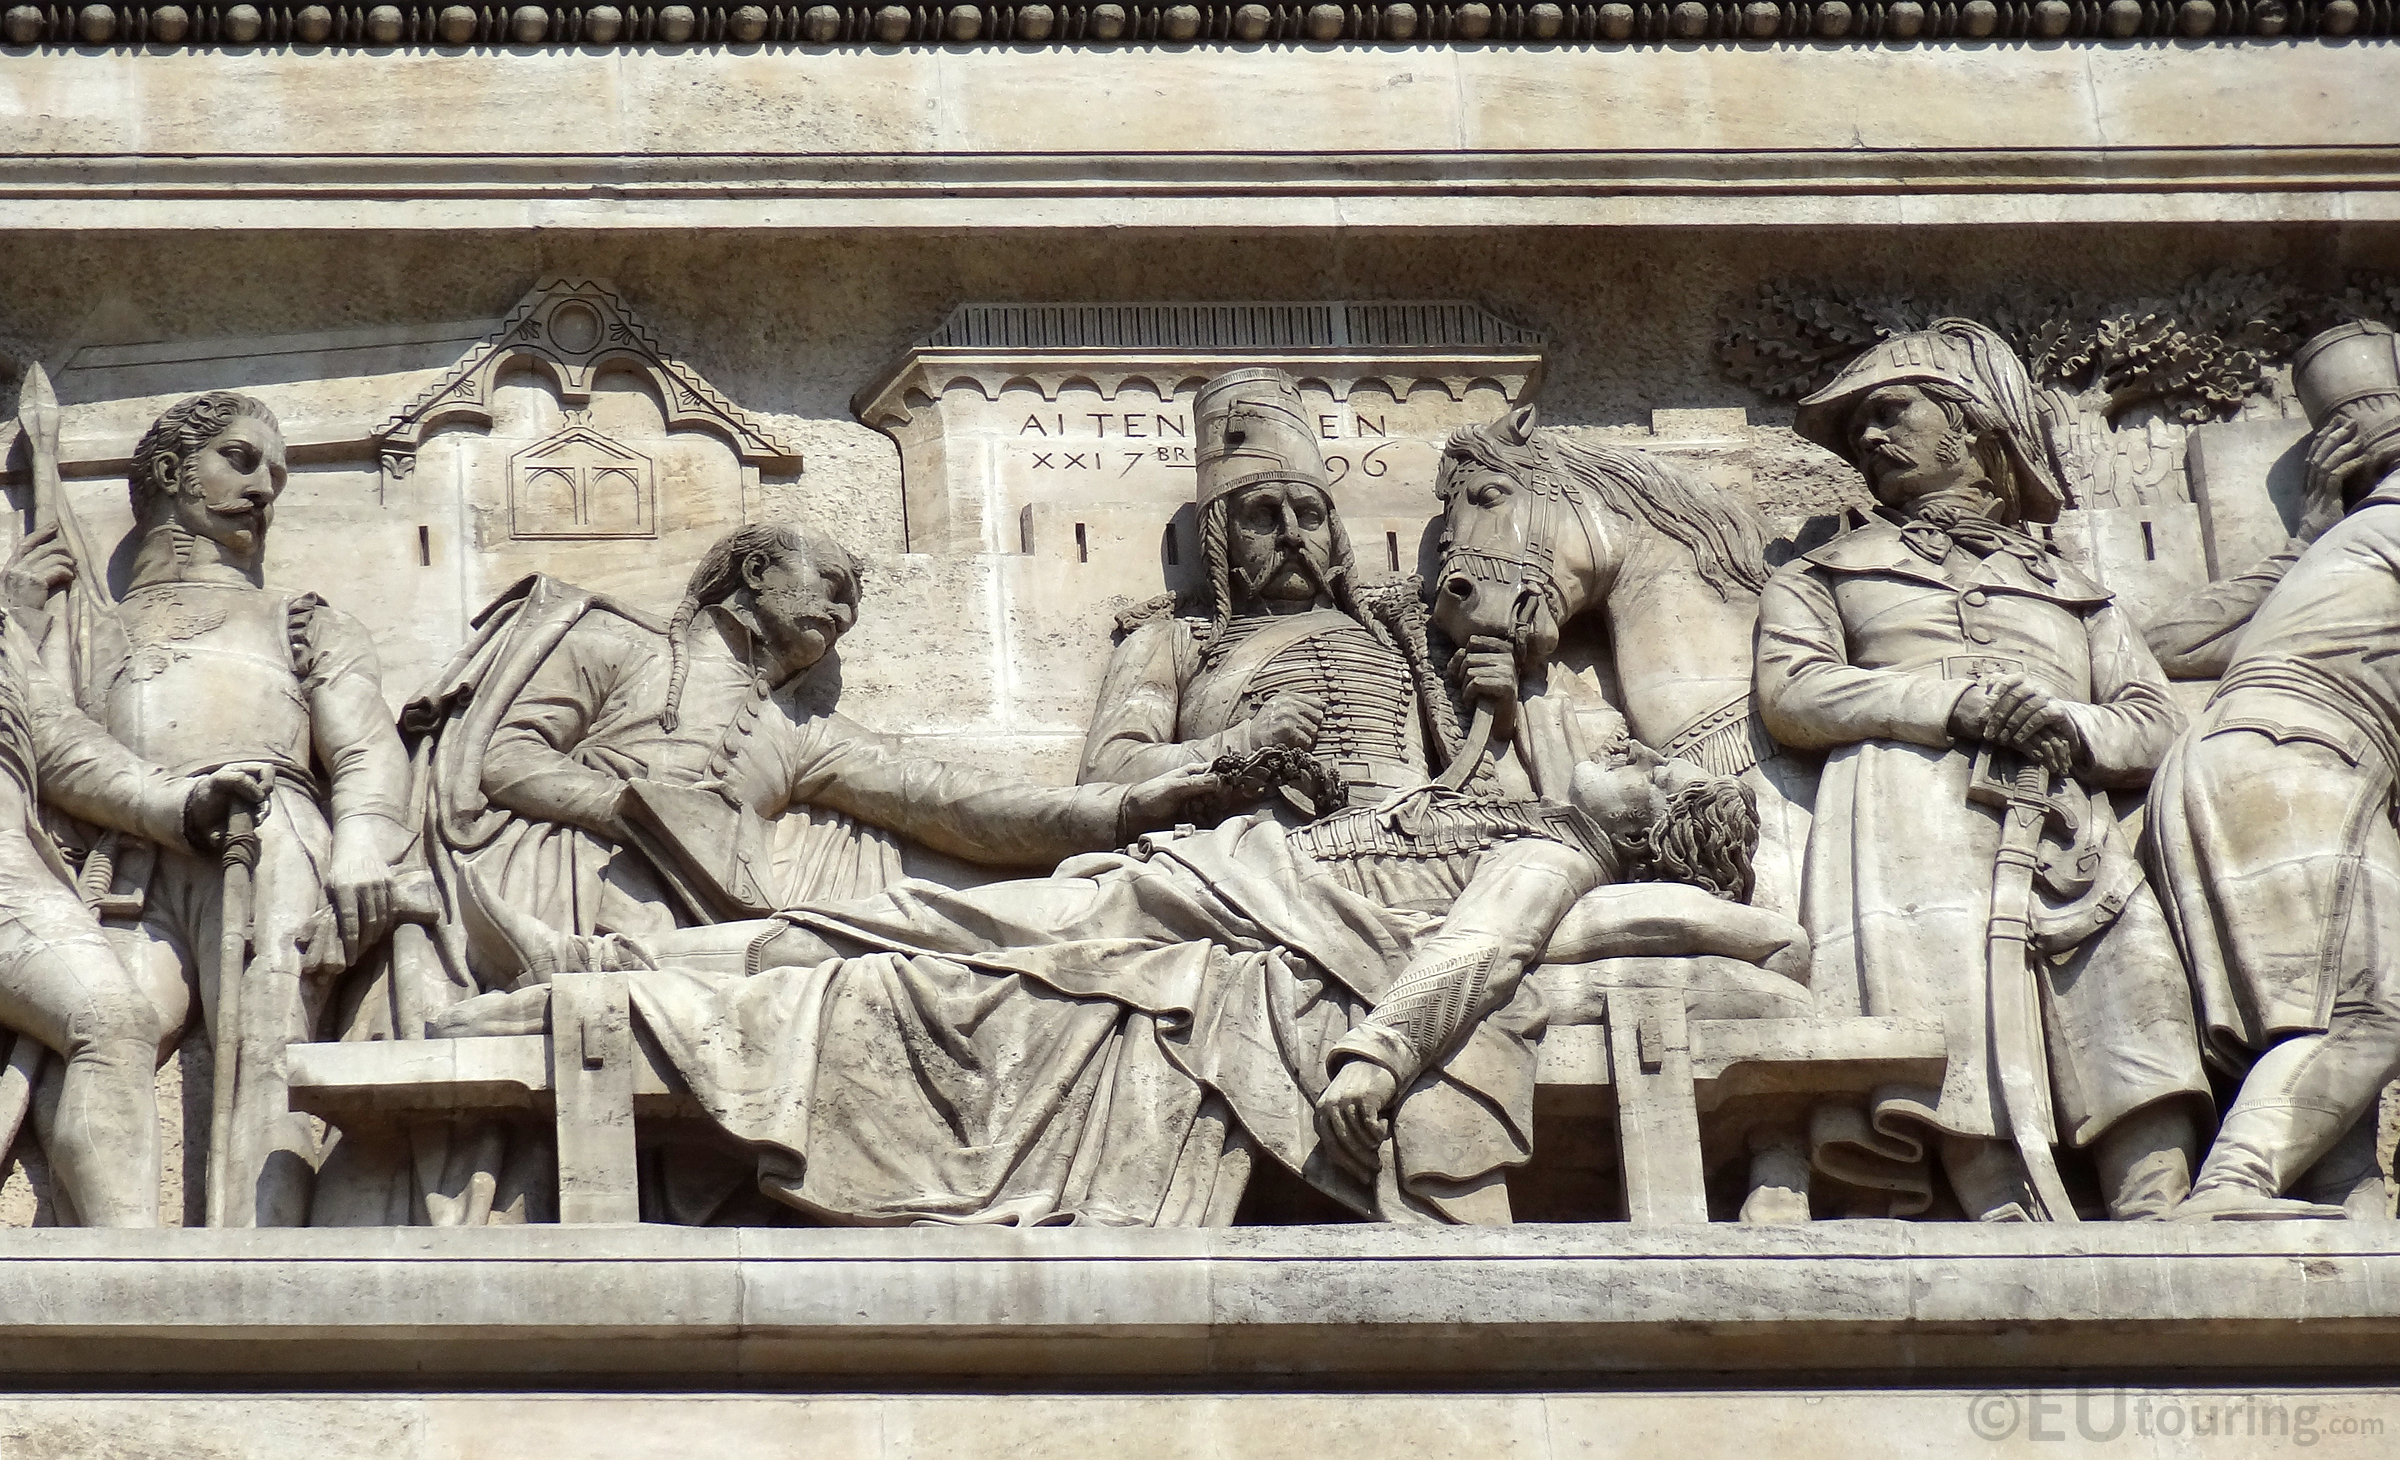 Stone historic scene at the Arc de Triomphe